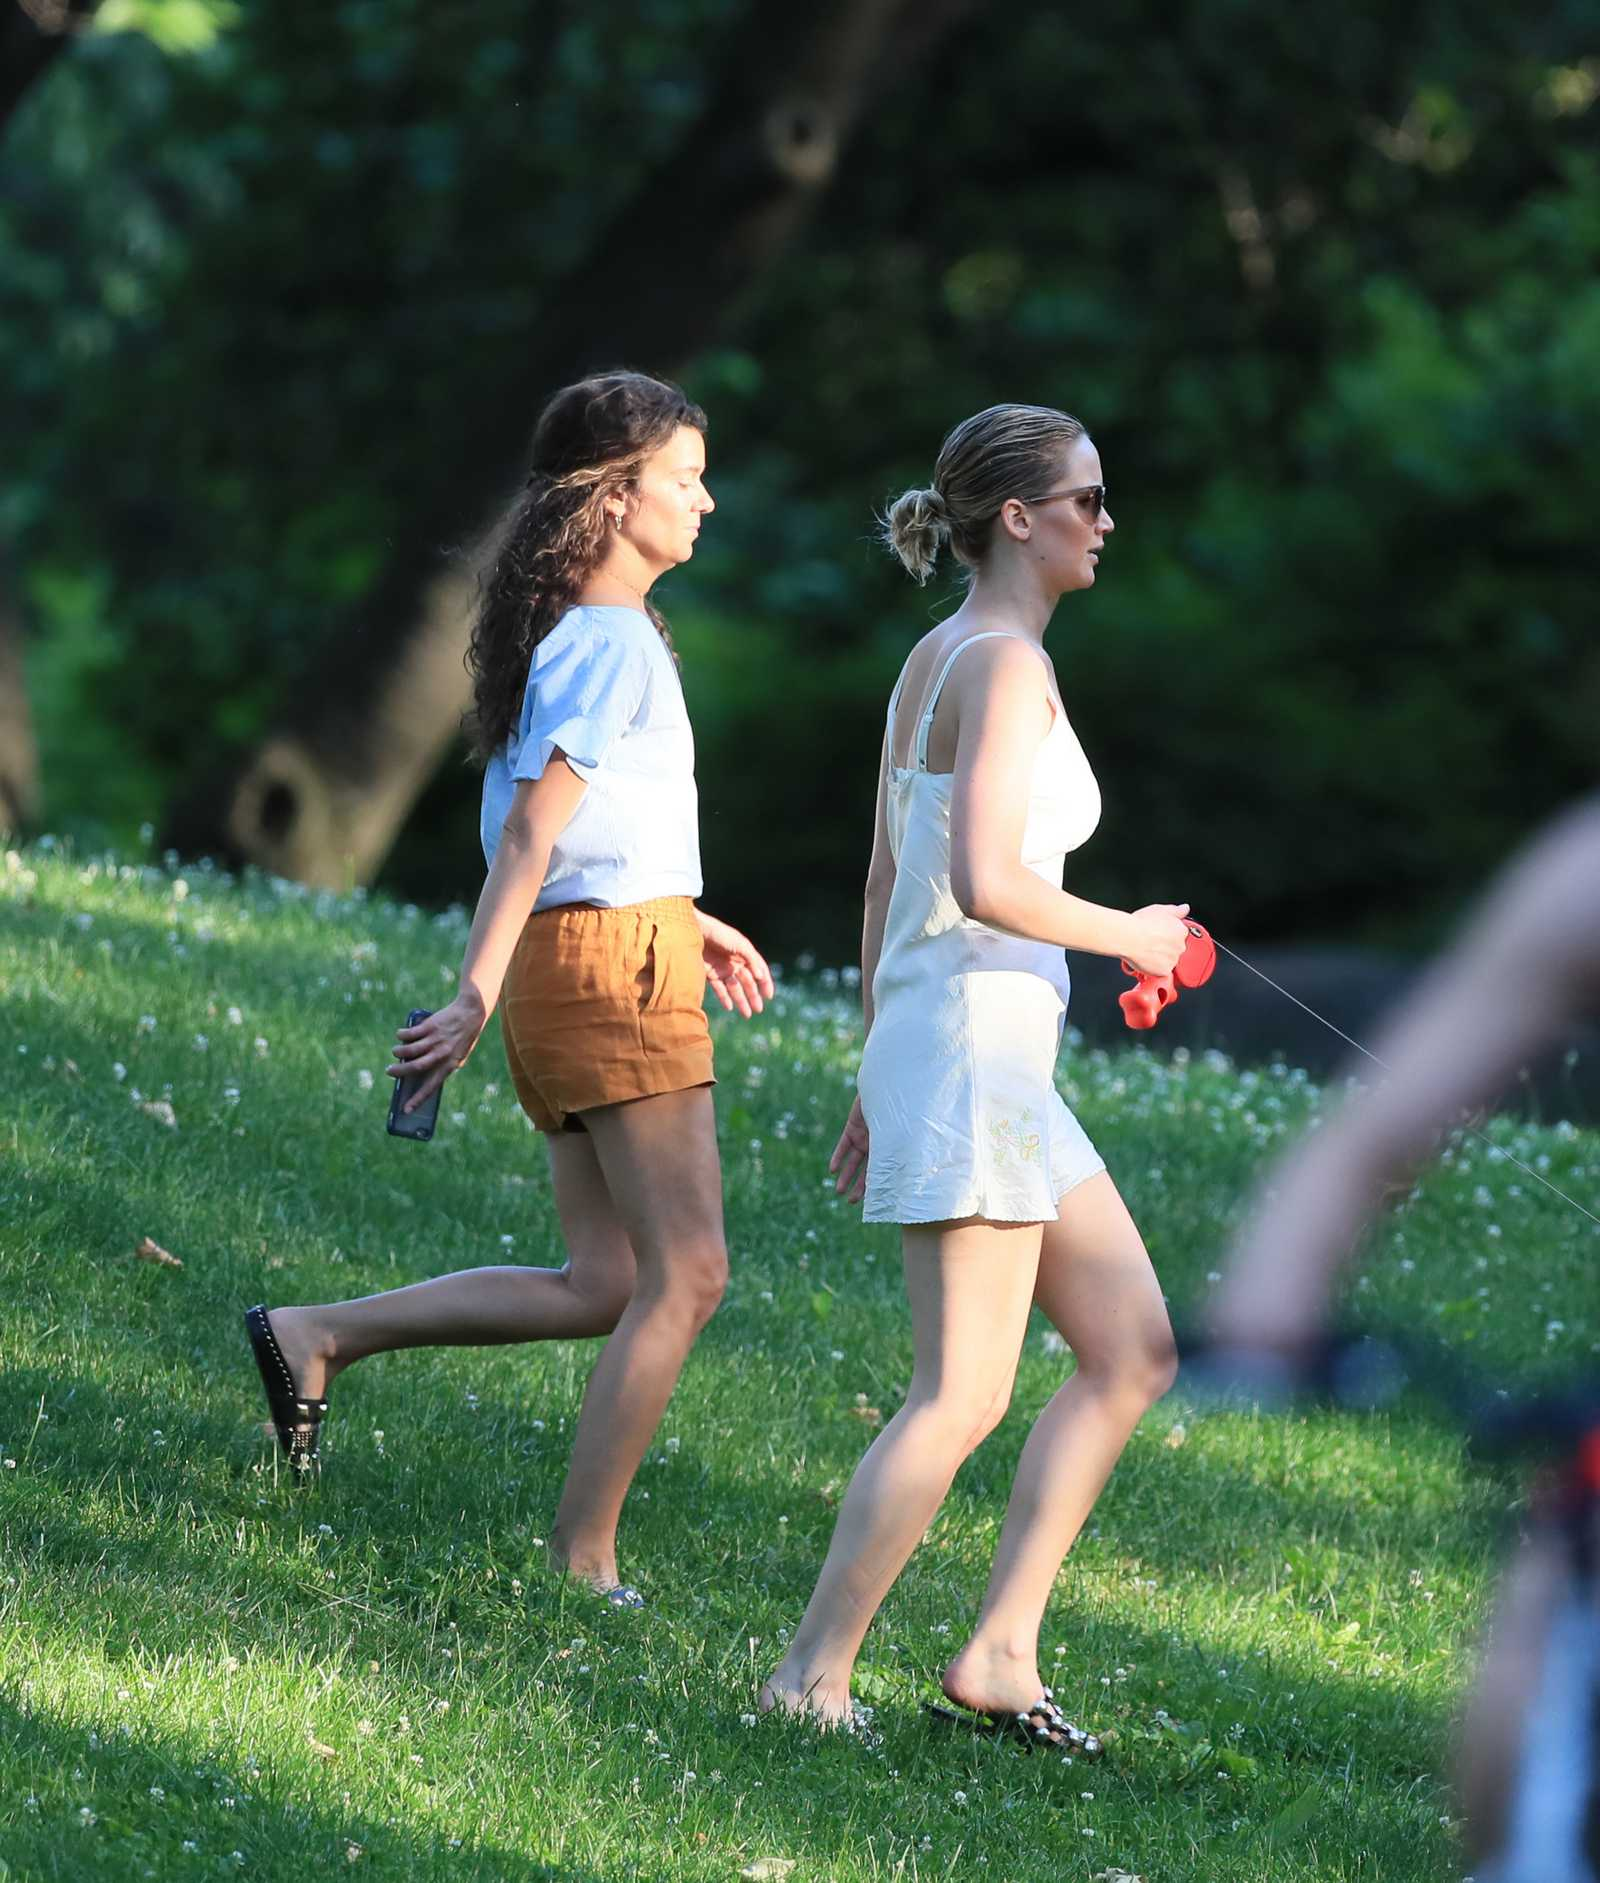 http://jenniferlawrencedaily.com/gallery/albums/userpics/10001/Jennifer_Lawrence_-_At_the_park_in_NYC_on_June_15-10.jpg